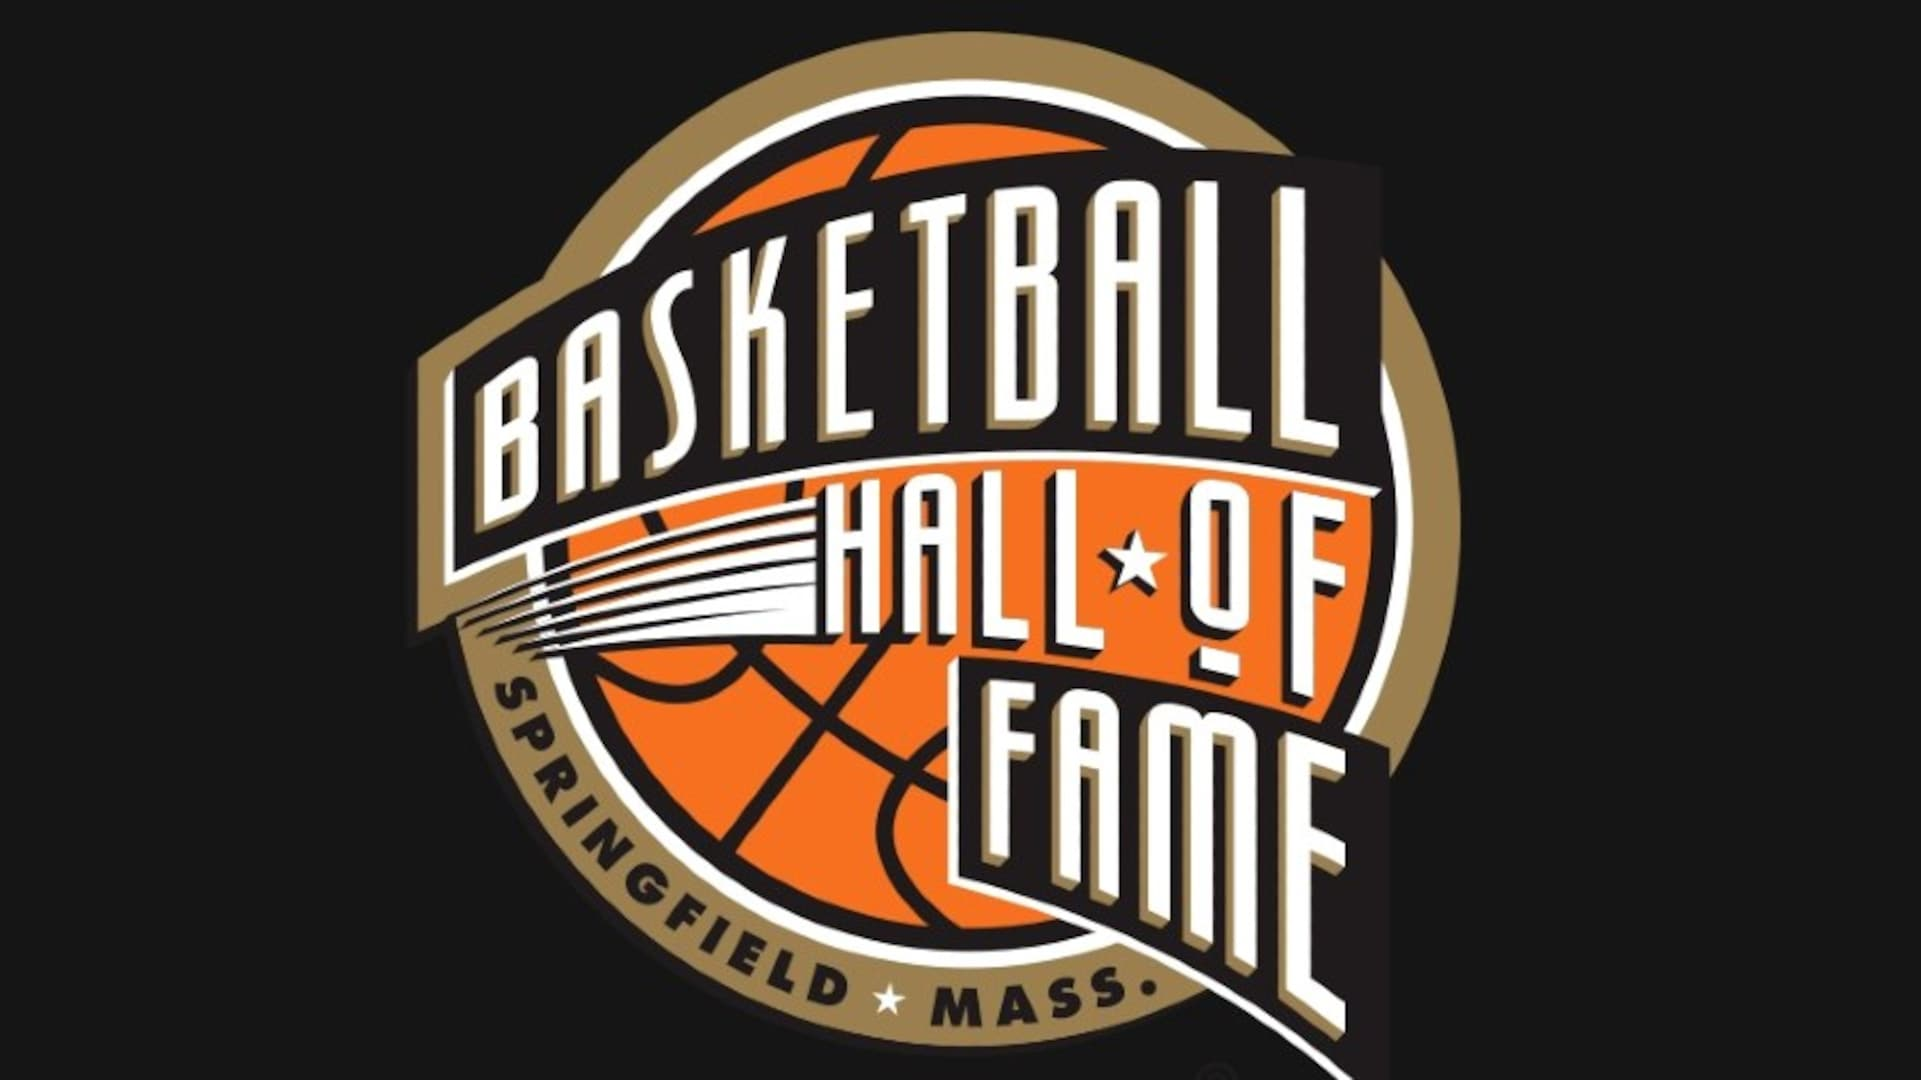 Naismith Memorial Basketball Hall of Fame Reschedules Class of 2020 Enshrinement to May 2021 at Mohegan Sun